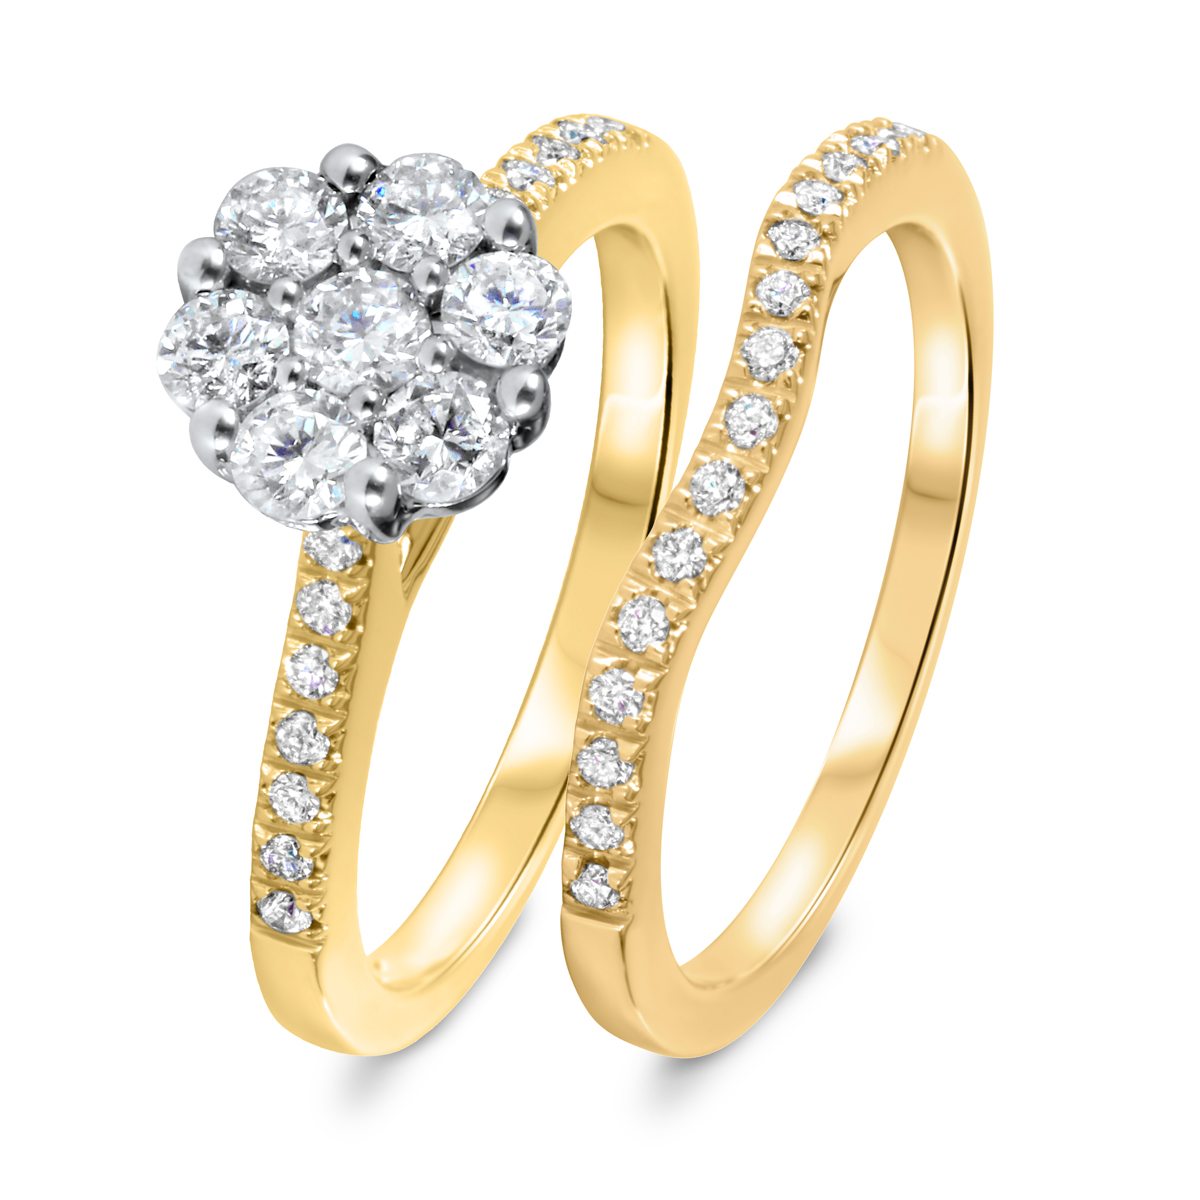 7/8 CT. T.W. Diamond Women's Bridal Wedding Ring Set 14K Yellow Gold